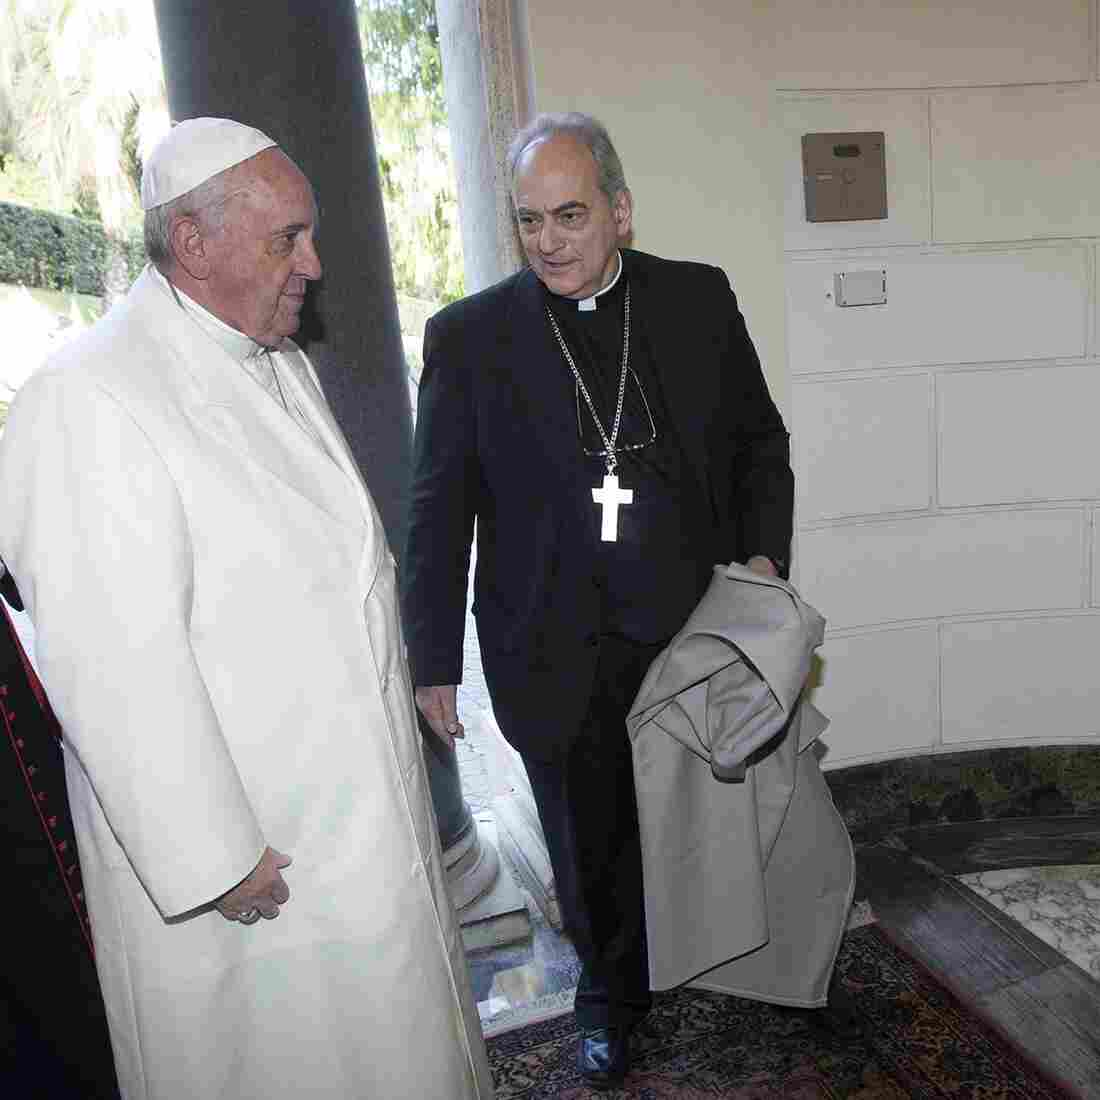 Pope Francis inaugurates a bronze statue of Pope Emeritus Benedict XVI with Chancellor of the Pontifical Academy of Sciences Bishop Marcelo Sanchez Sorondo.